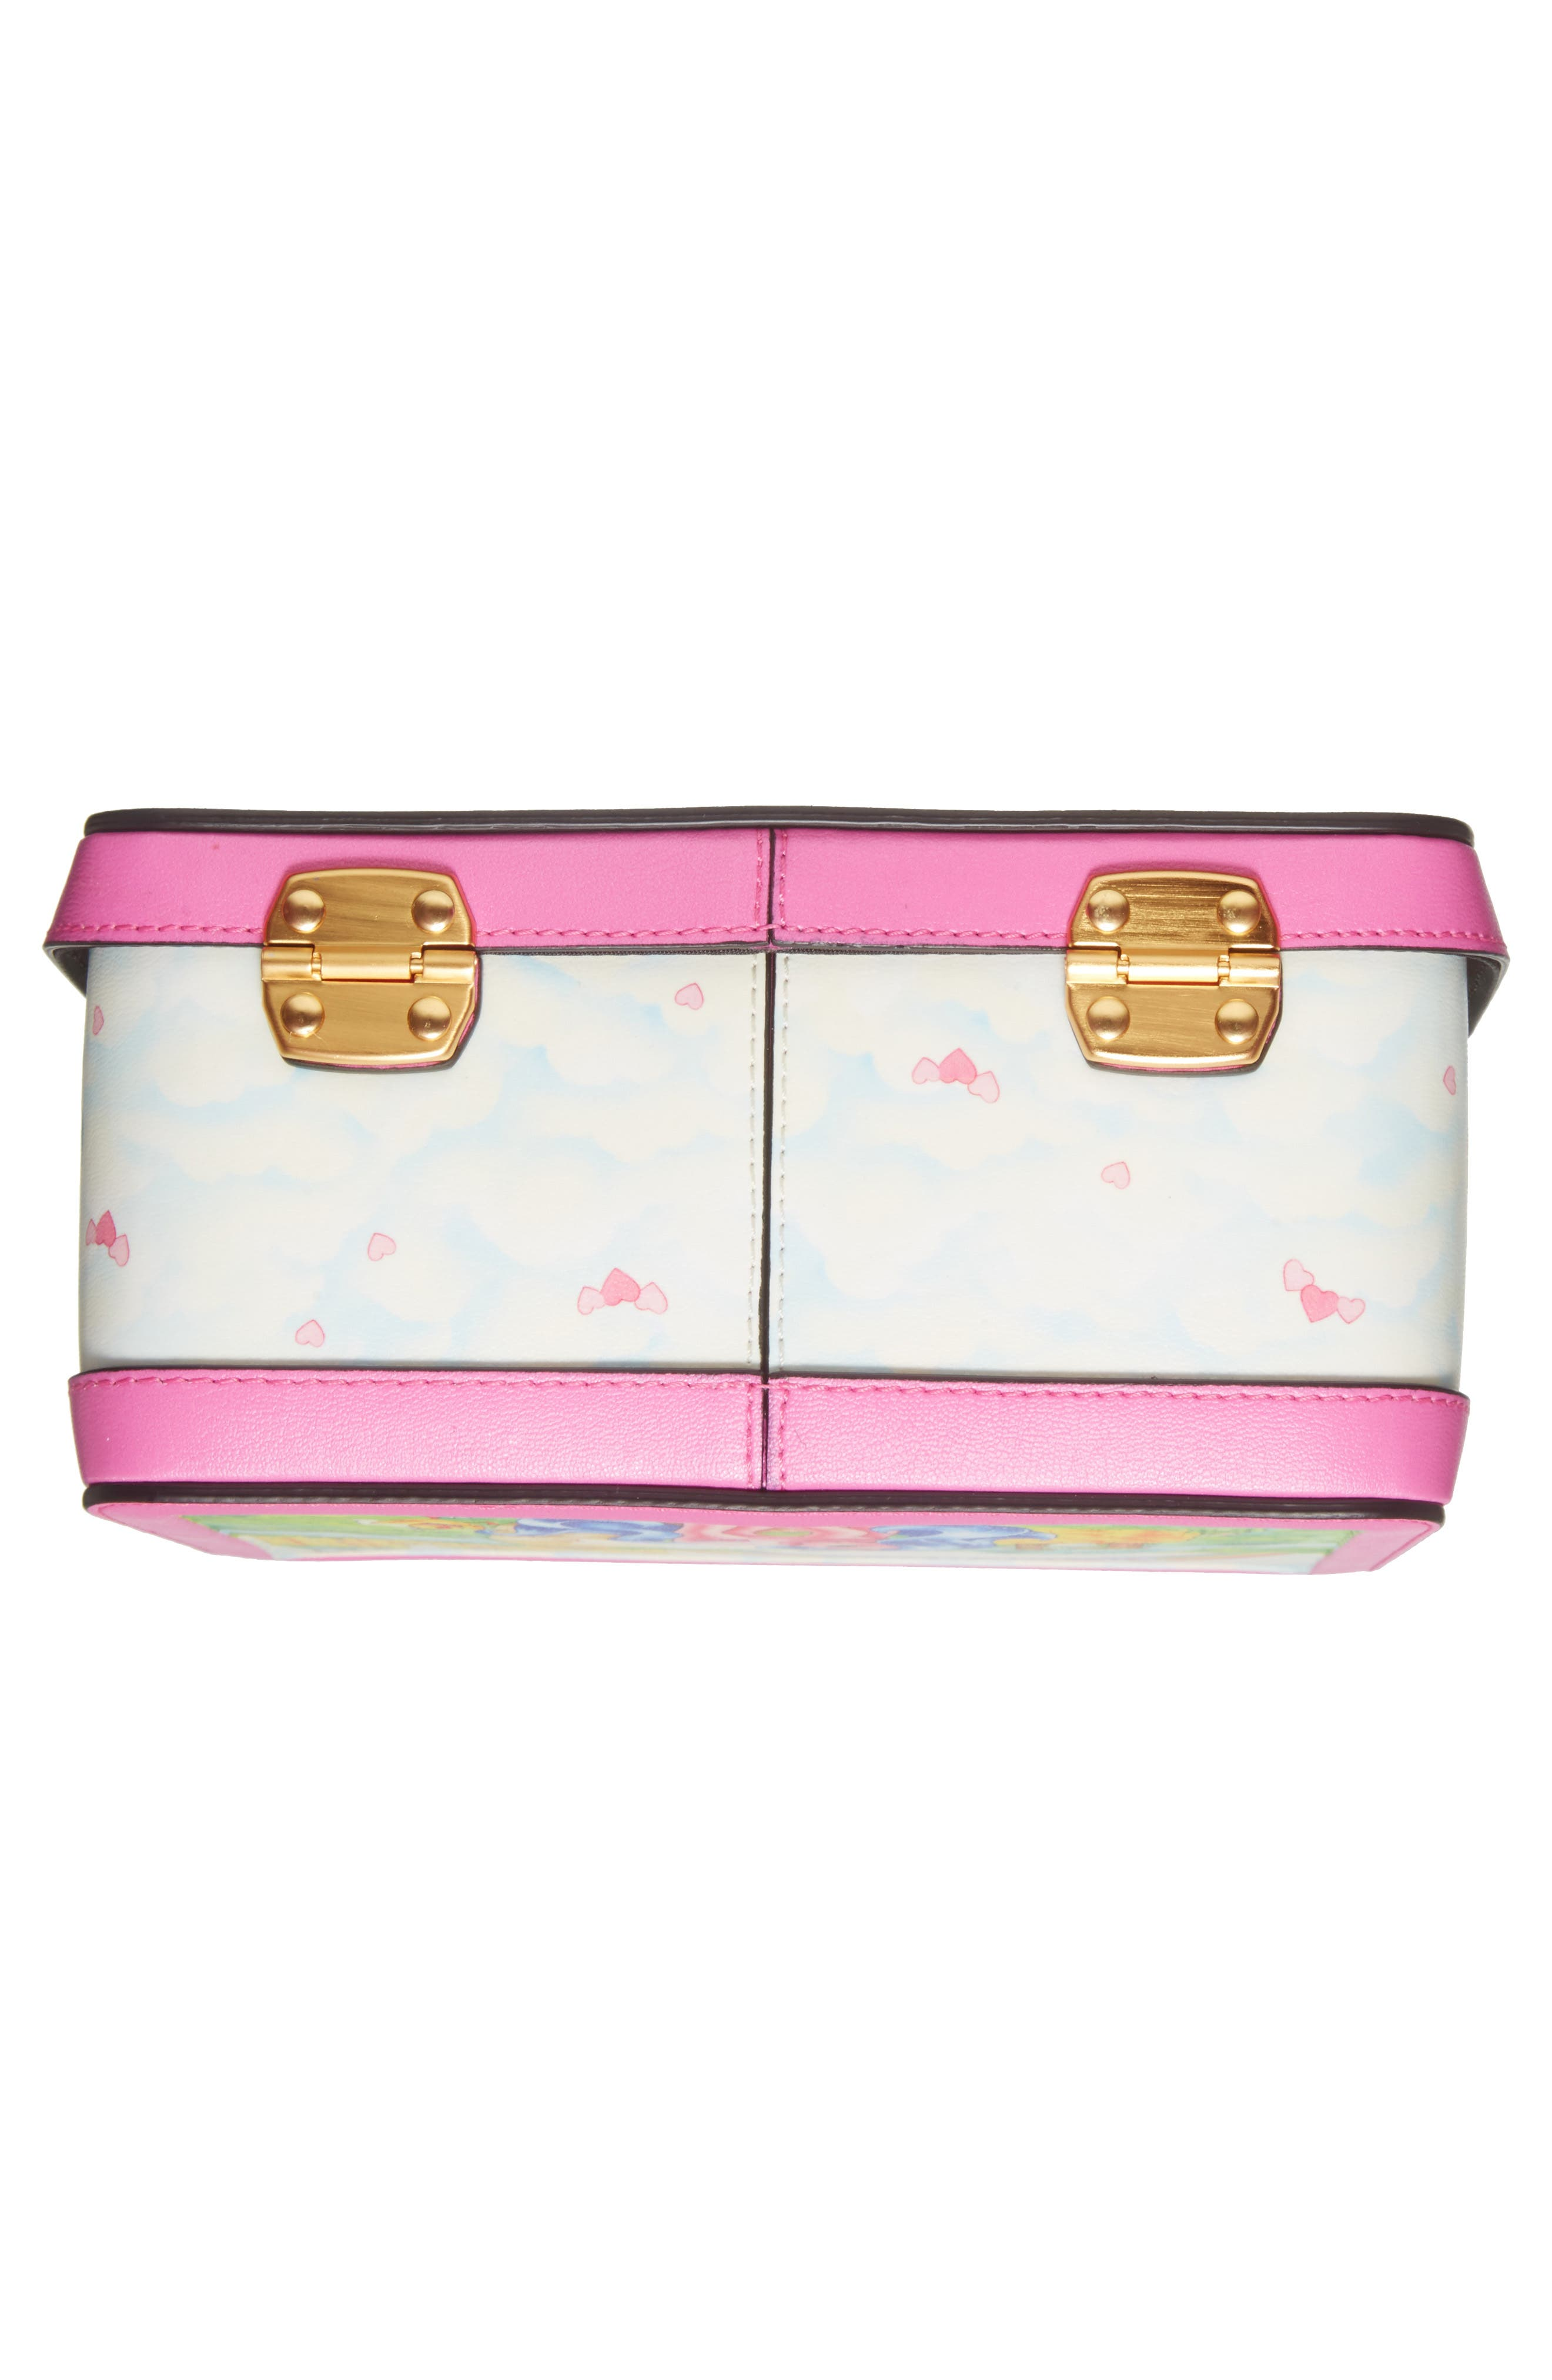 x My Little Pony Leather Lunch Box,                             Alternate thumbnail 6, color,                             Pink